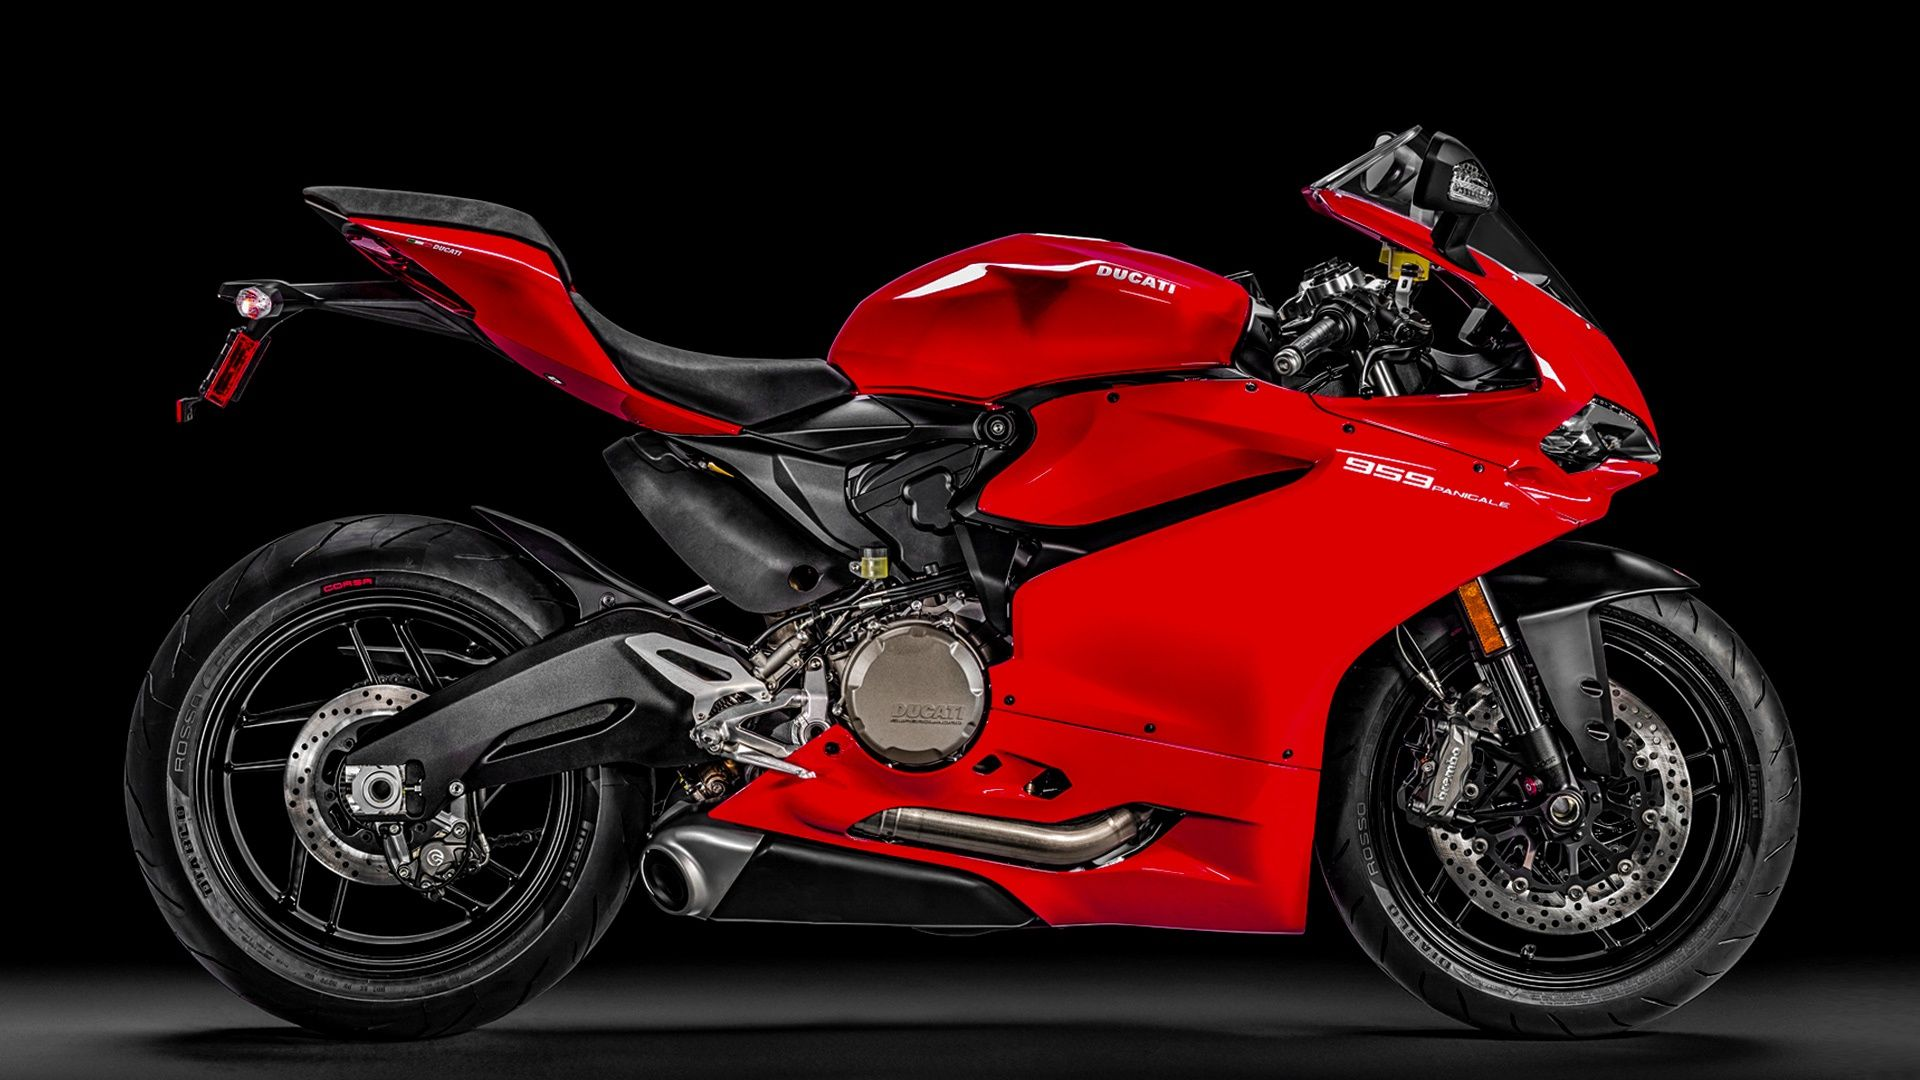 Ducati 959 Panigale with Shotgun Exhaust